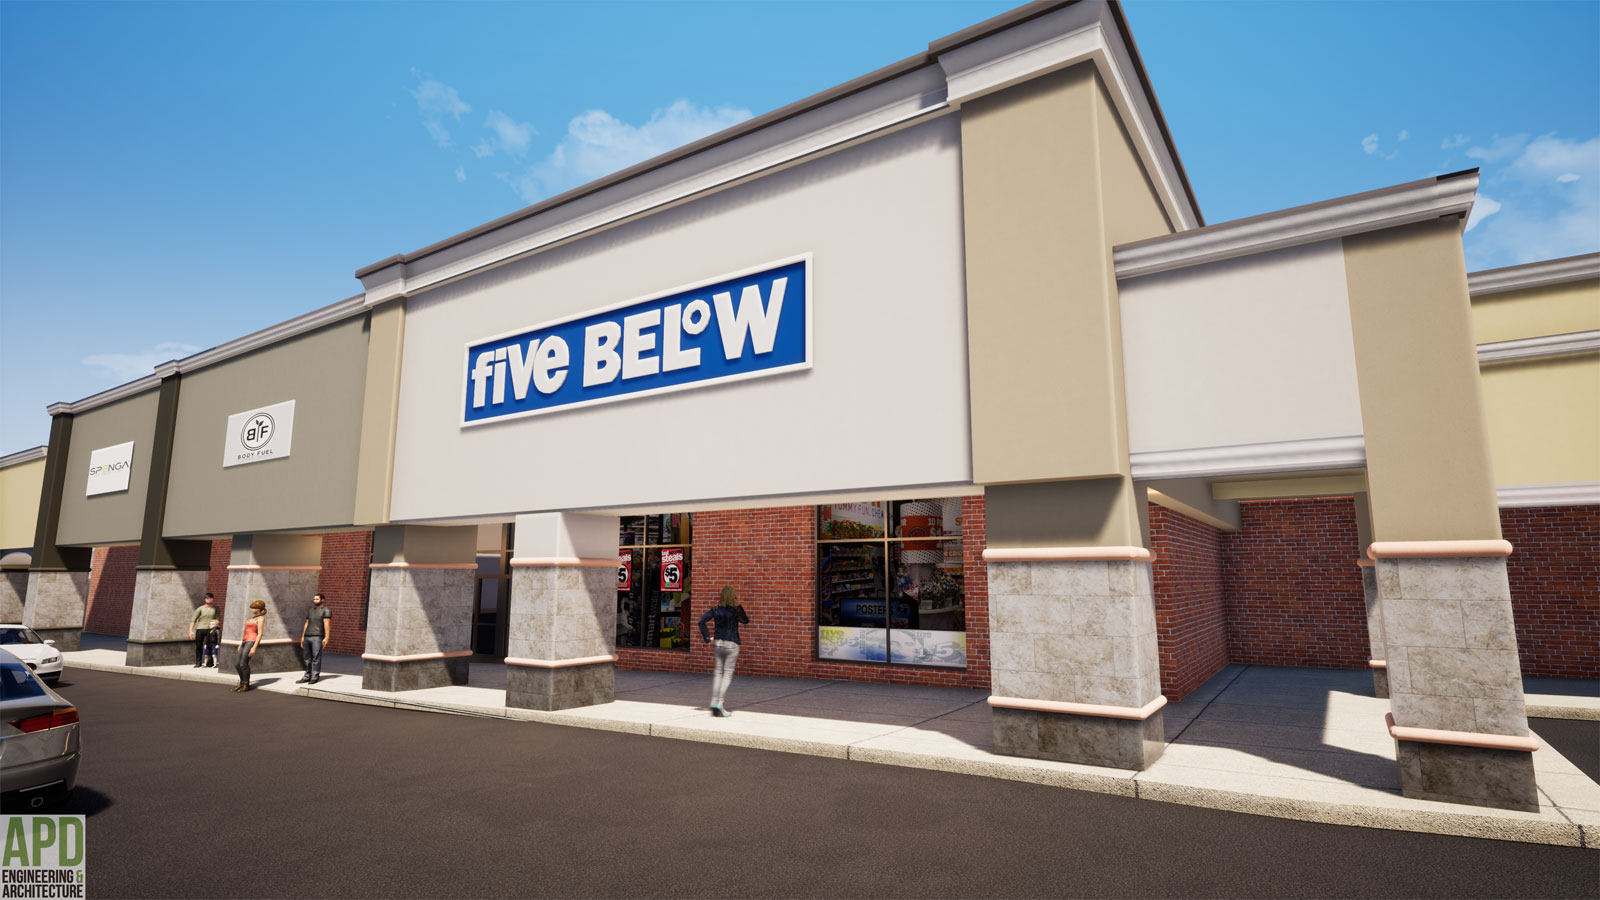 five-below-rendering-4.jpg